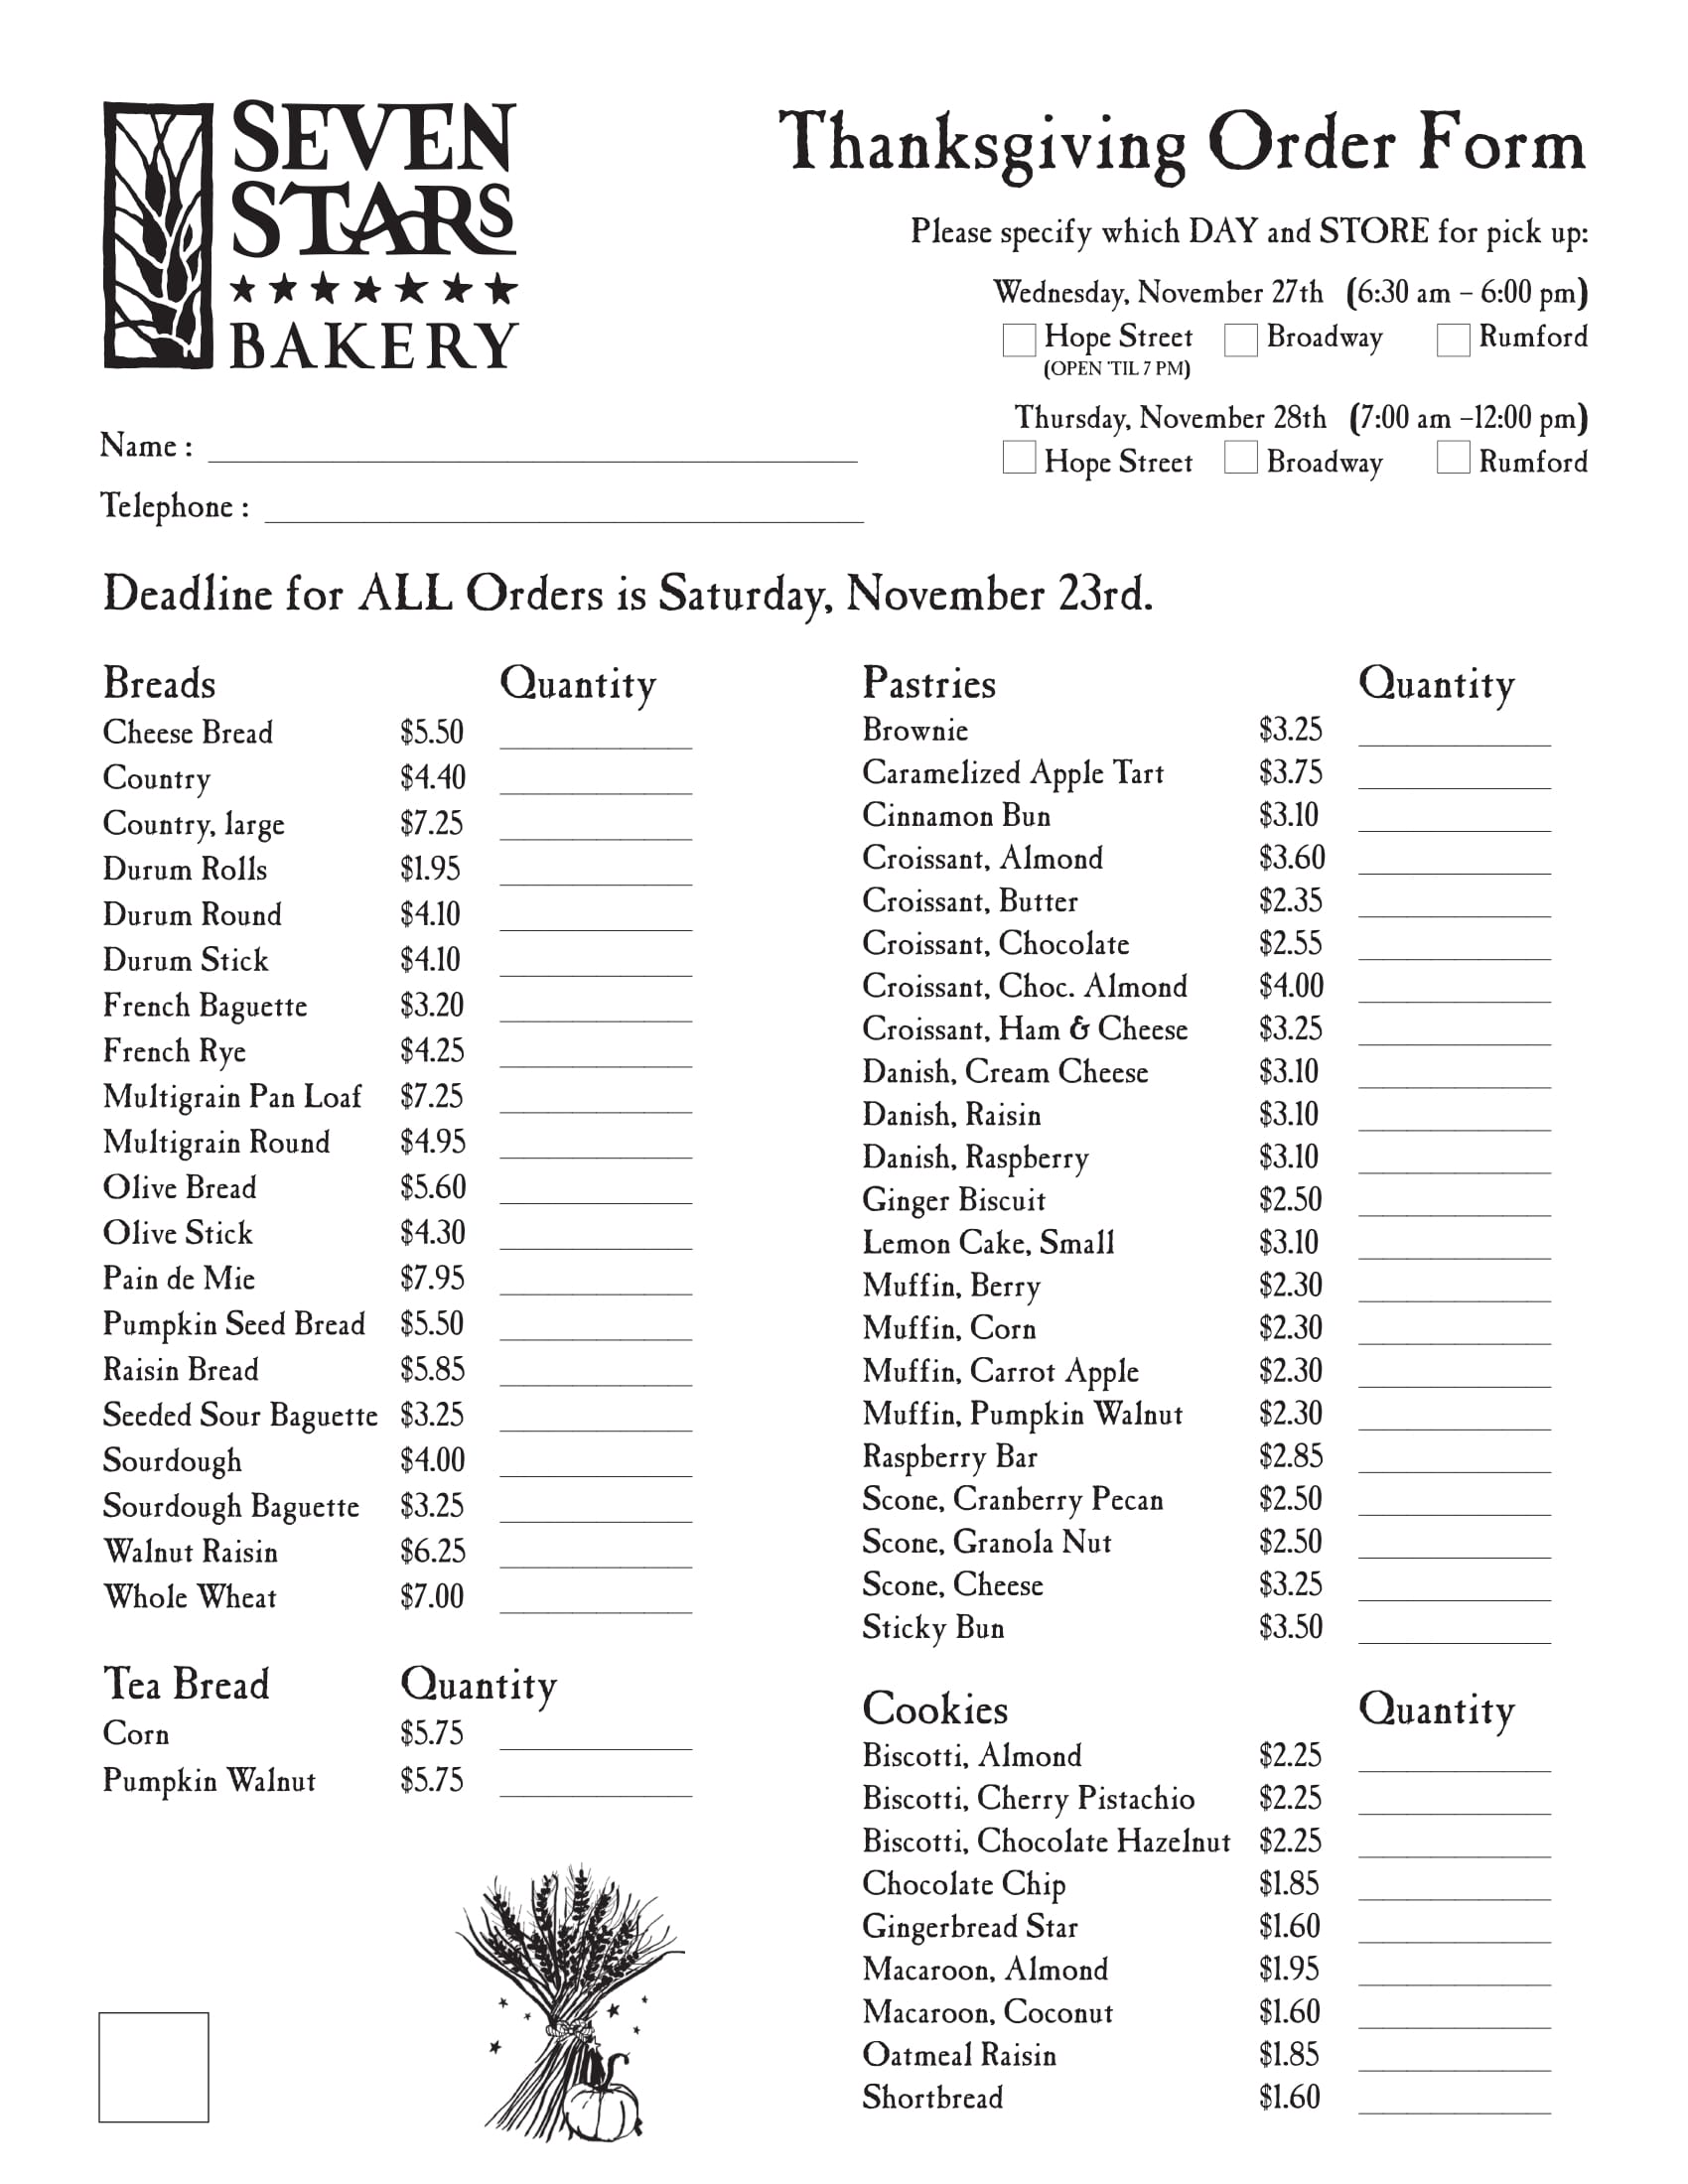 bakery thanksgiving order form 1